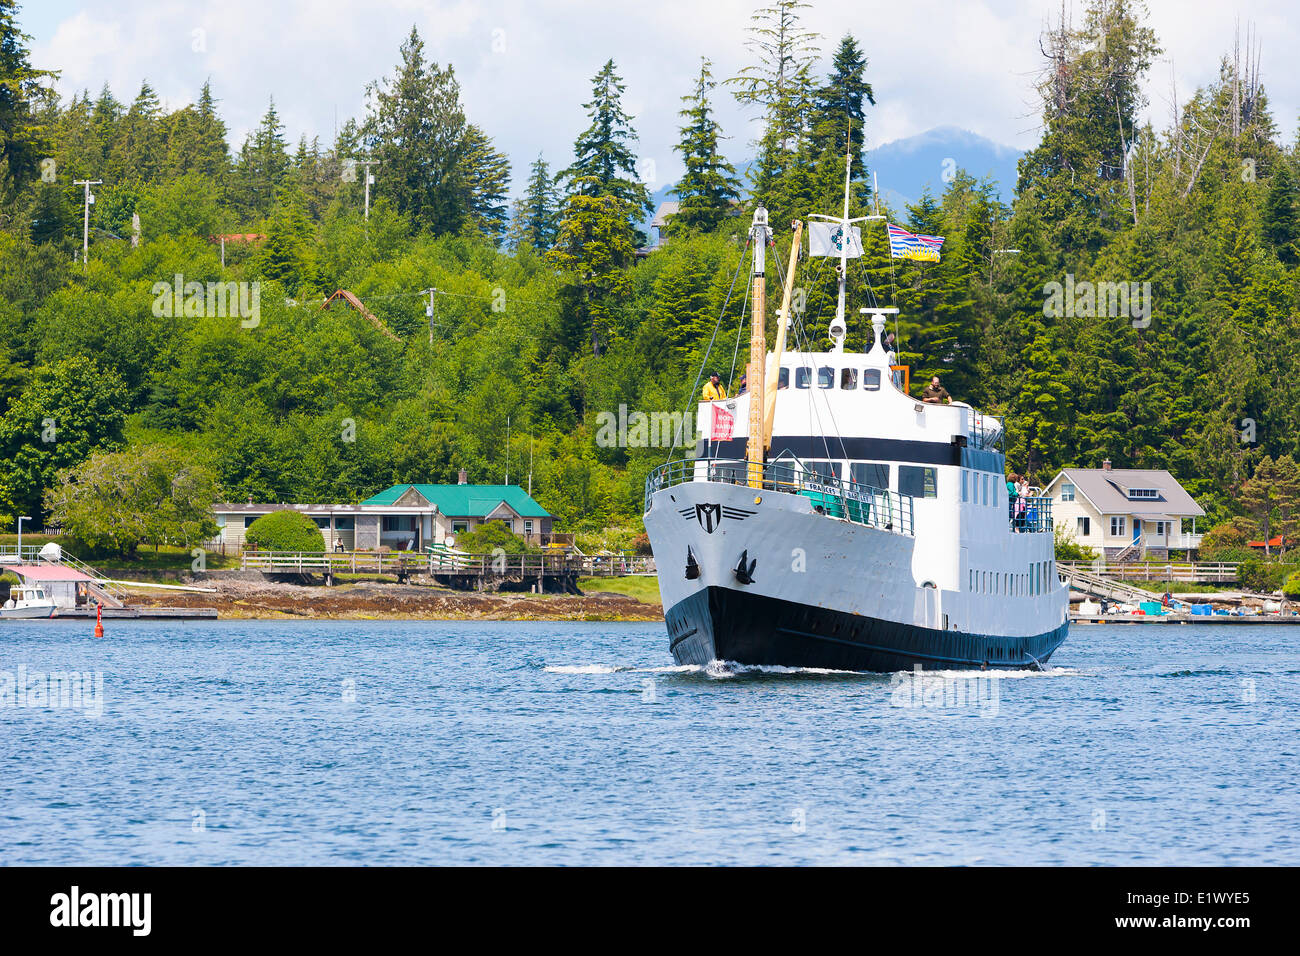 The M.V. Frances Barkley is a regular sight supplying towns villages with scheduled stops in around the Barkley - Stock Image